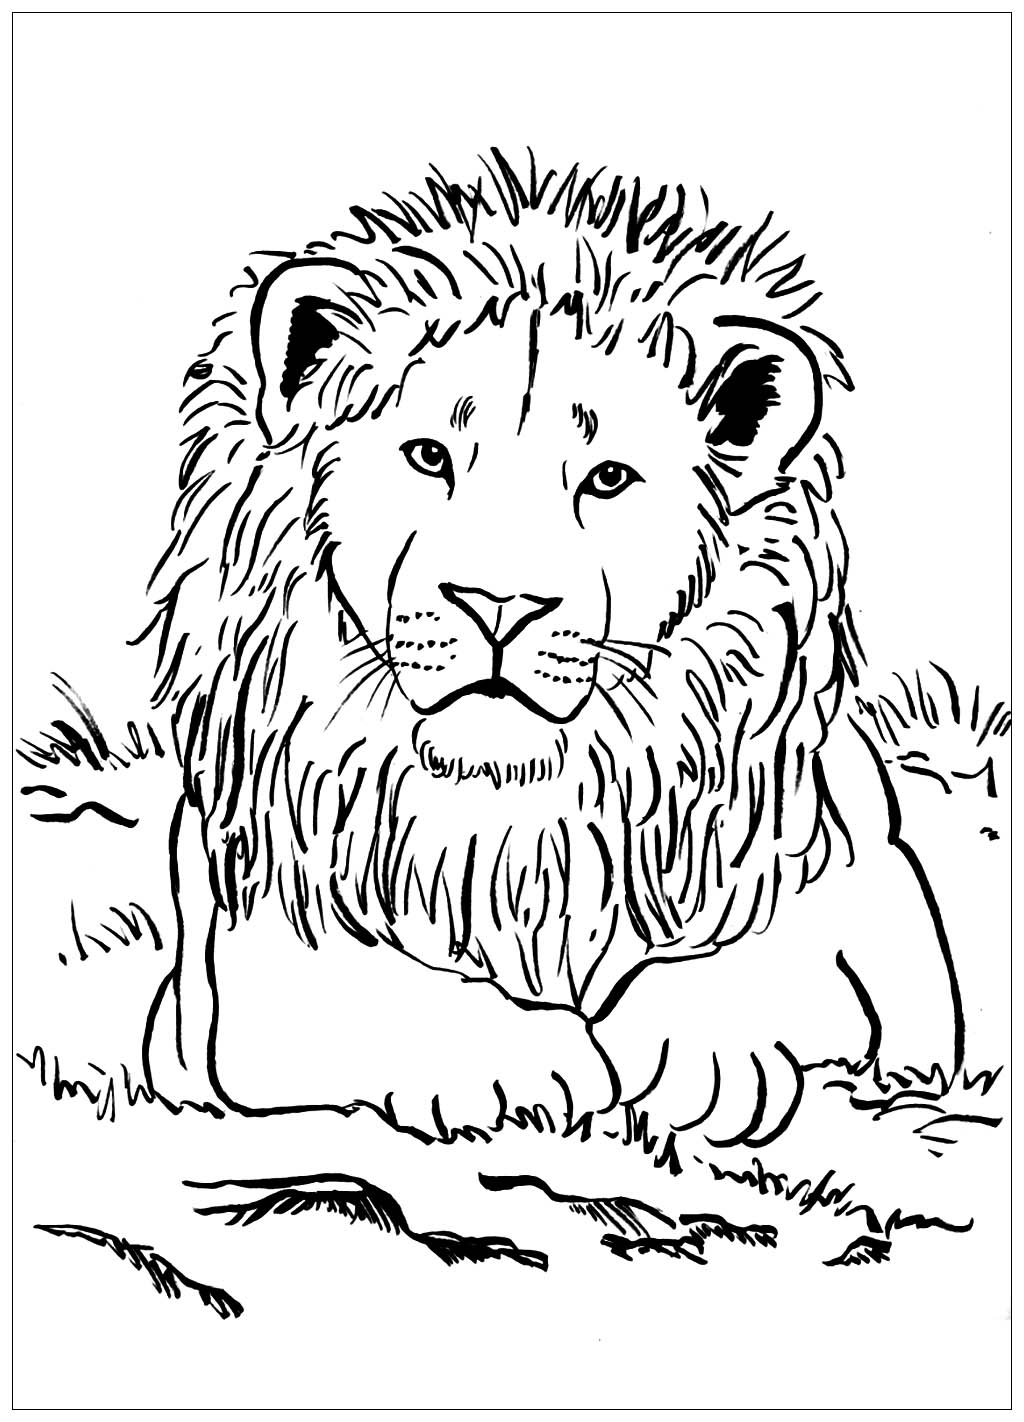 coloring pages for kids lion lion coloring pages to download and print for free coloring lion pages for kids